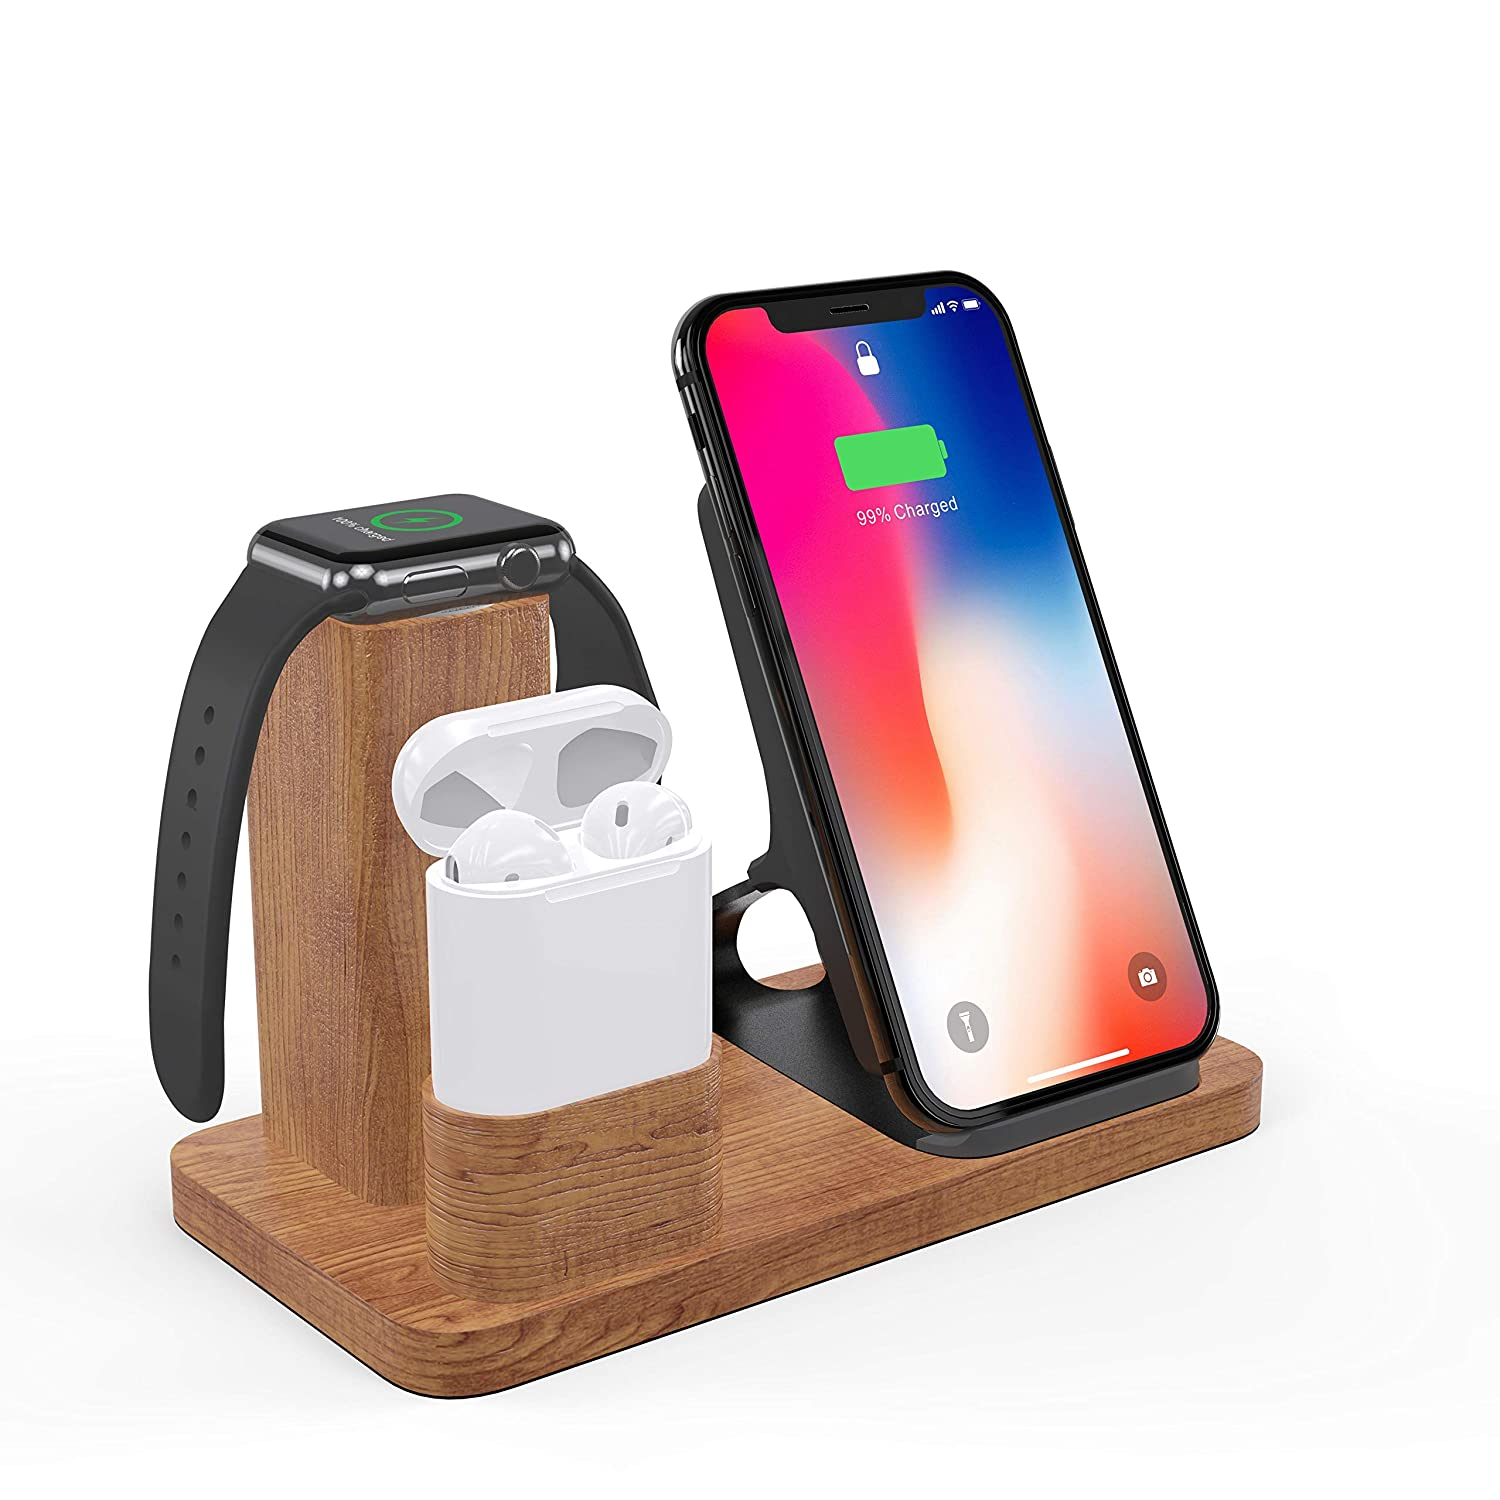 best sneakers 13068 2f28b Solid Wood Wireless Charger Stand, LiZHi 3 in 1 Charging Station Docks for  AirPods 2/1 Apple Watch Series 4/3/2/1 iPhone X/8/8 Plus iPhone Xs/XR/XS ...